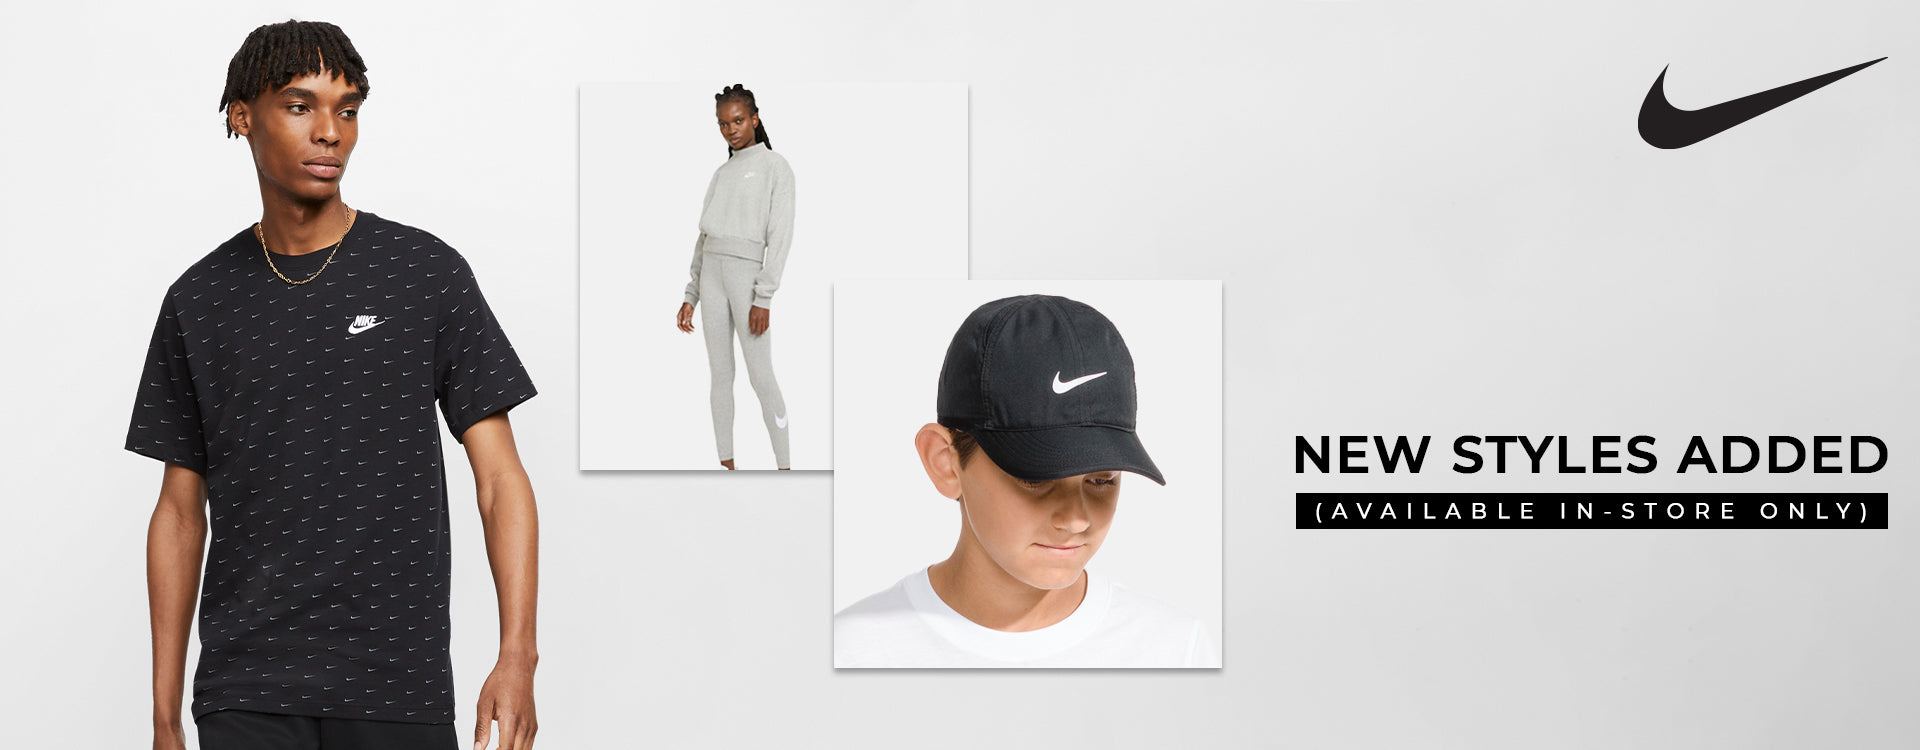 Nike Footwear, Apparel & Accessories (In-Store Only)